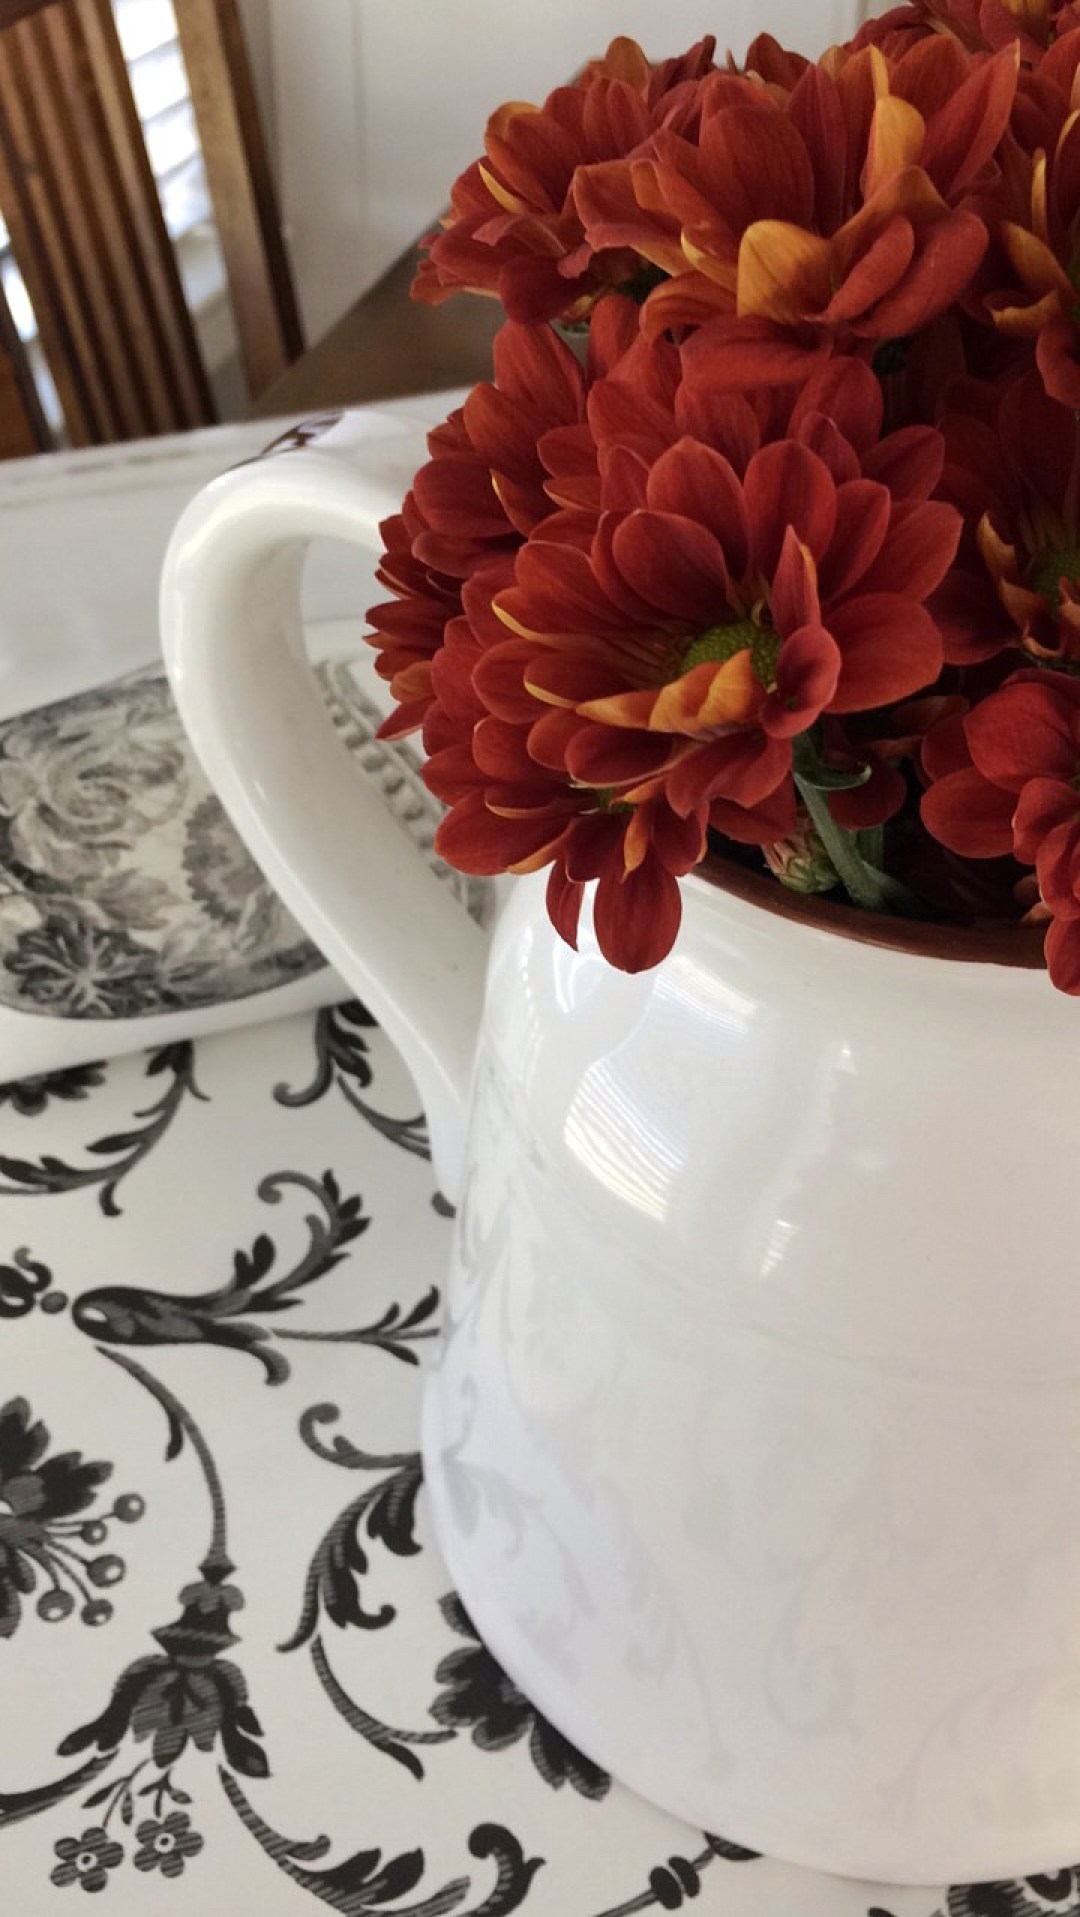 fall blooms, flower arrangements for fall, diary, brain dump